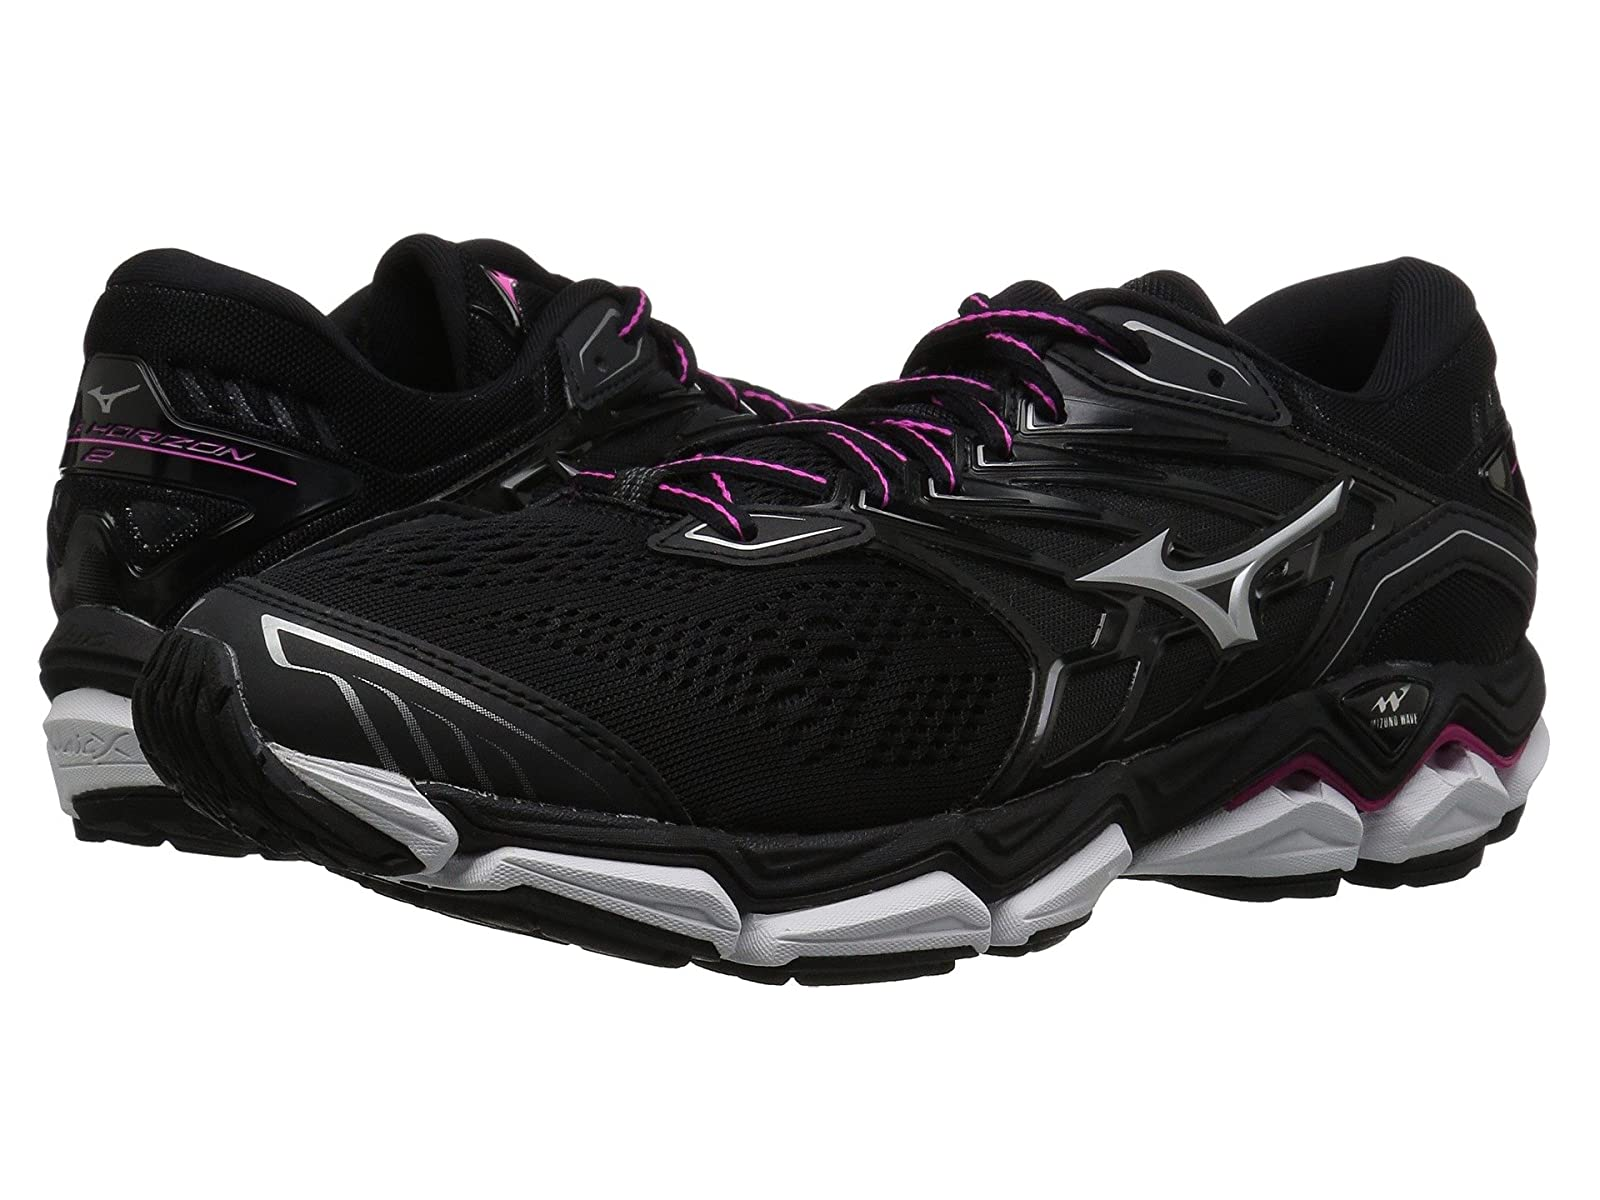 Mizuno Wave Horizon 2Atmospheric grades have affordable shoes